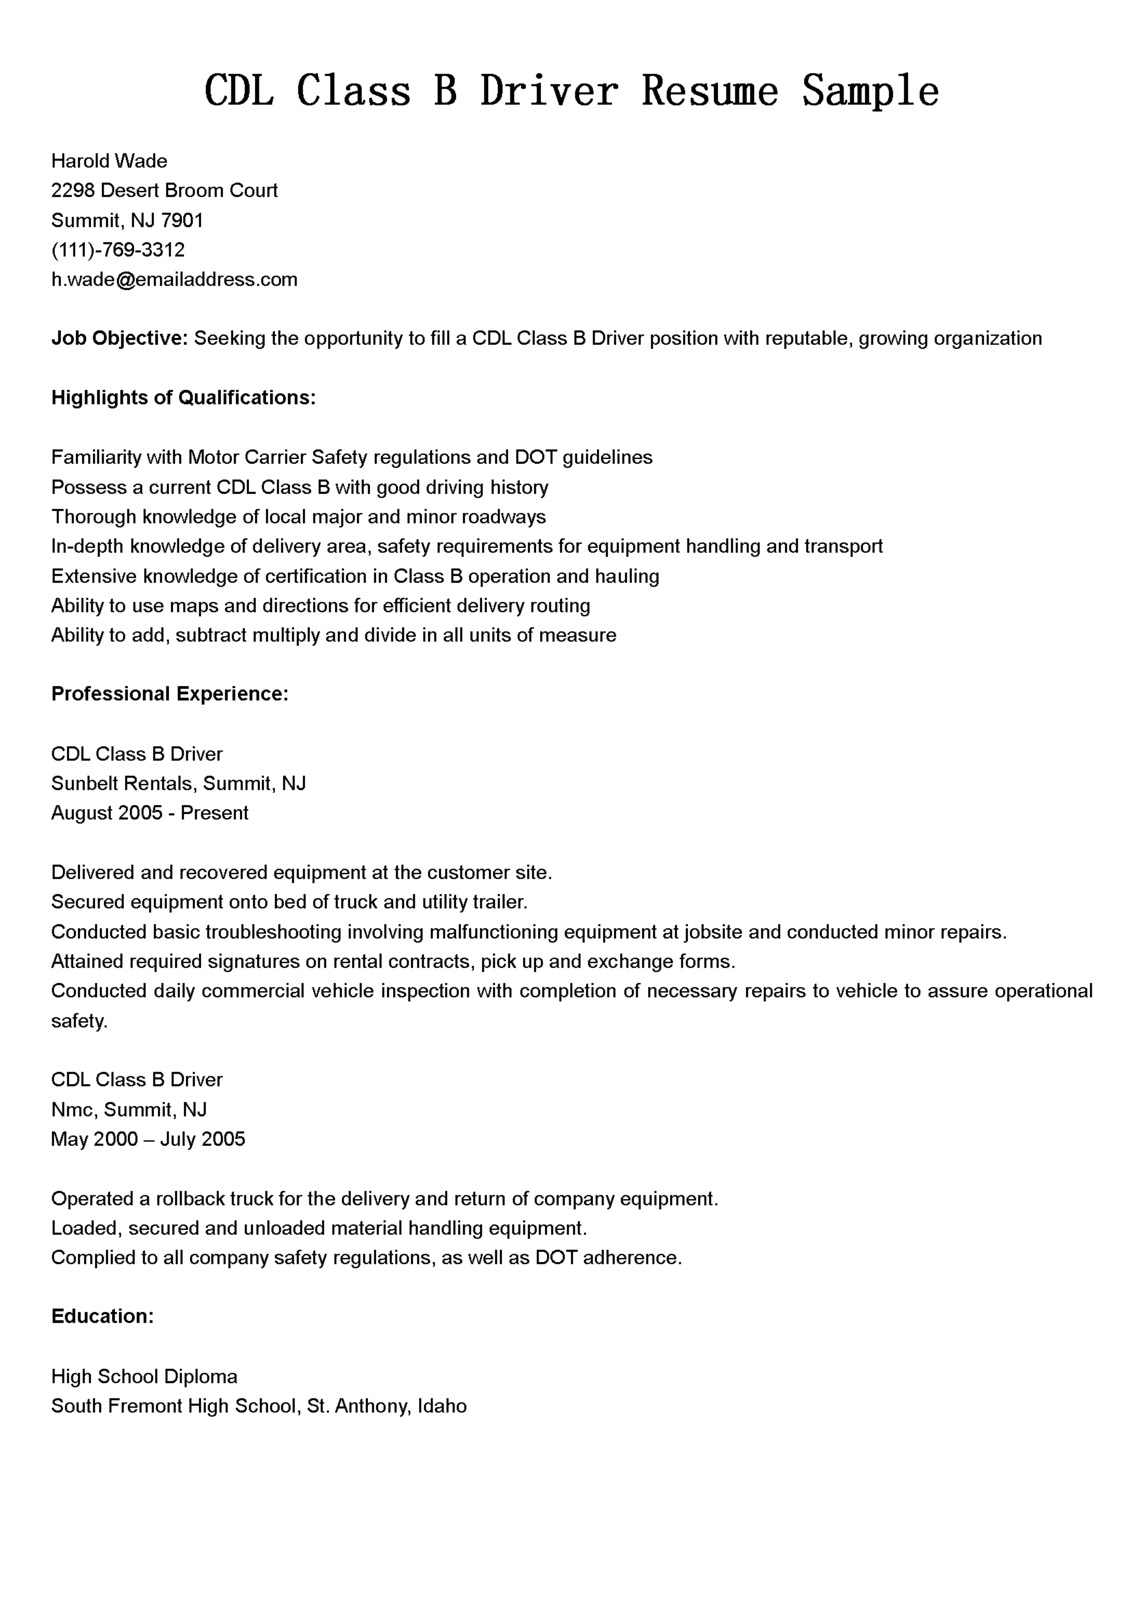 emt resume resume format download pdf sample of attorney resume emt job description for resume - Emt Job Description For Resume